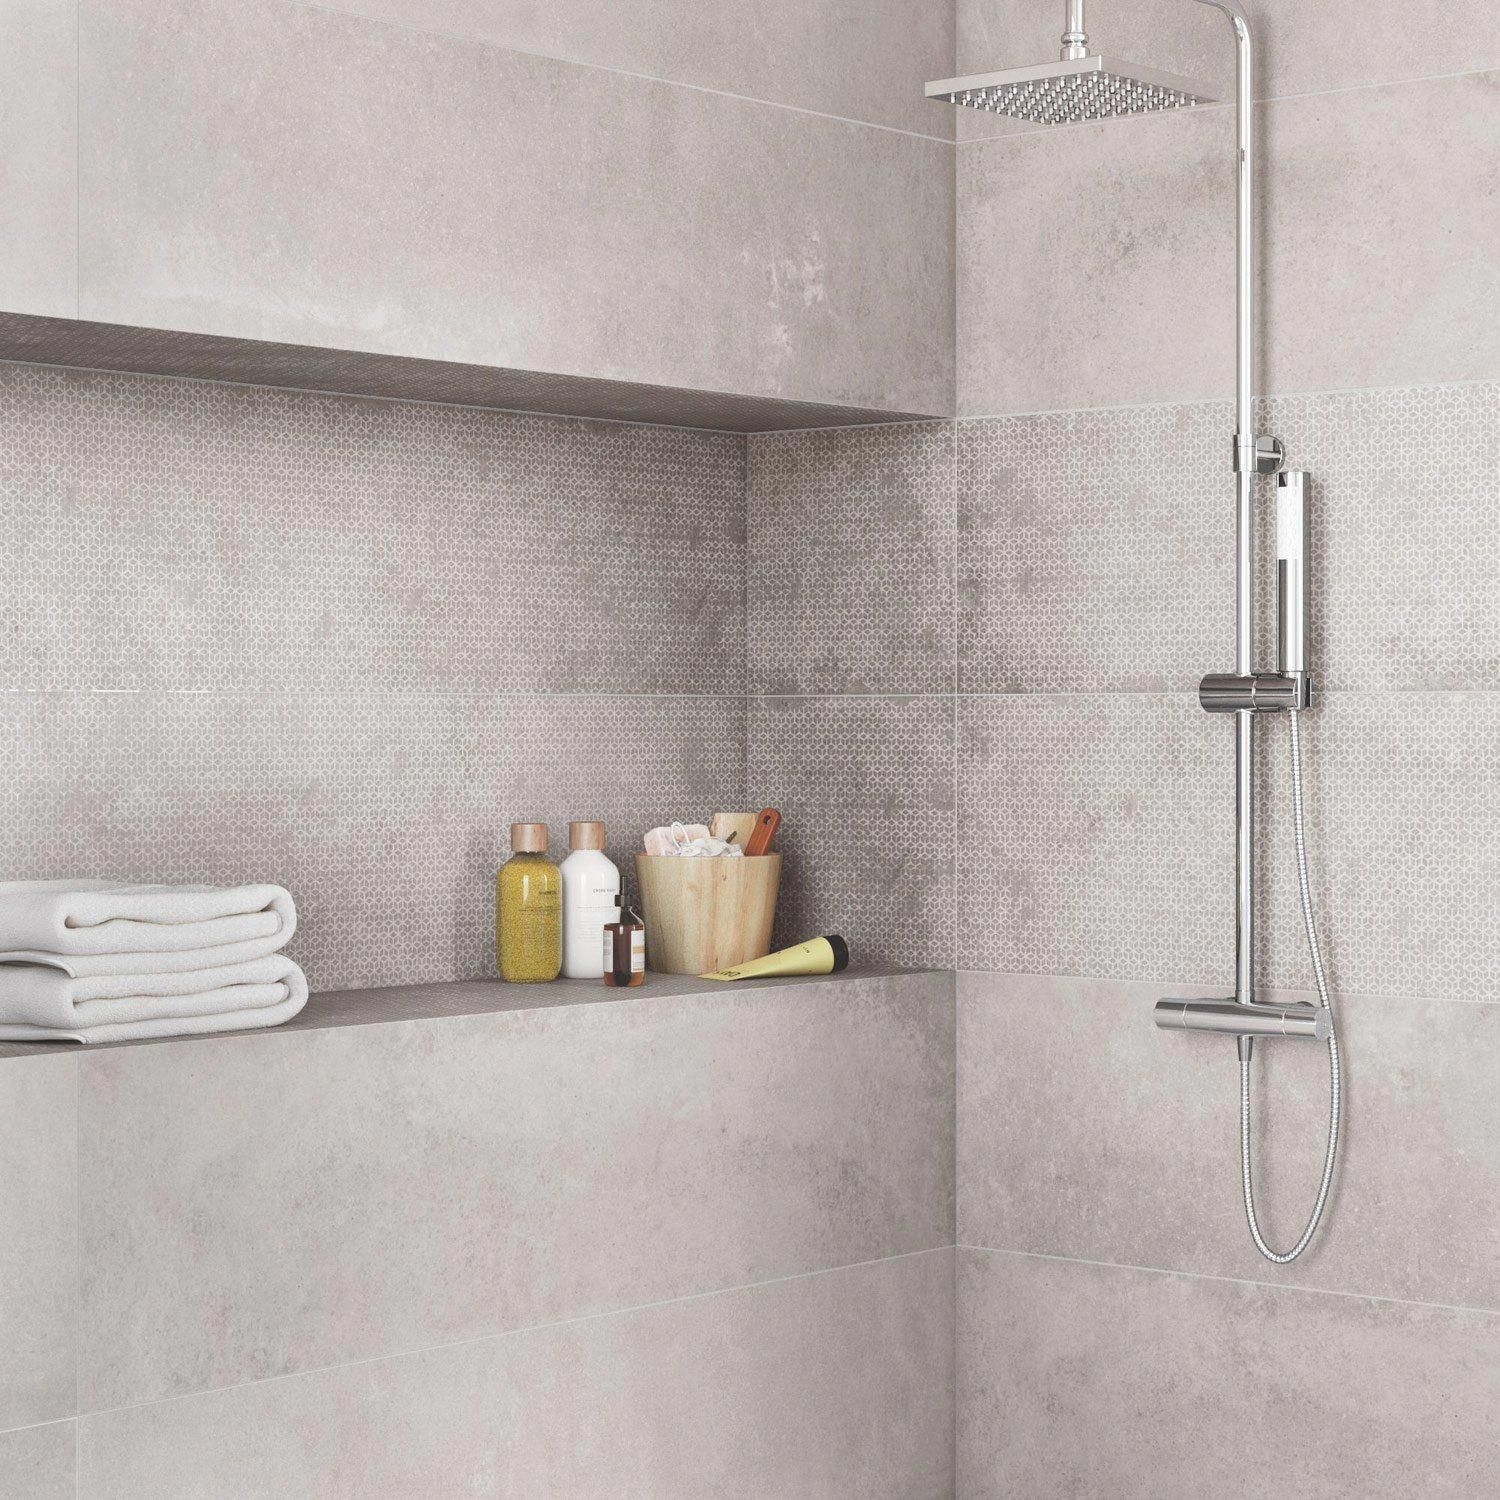 Examine This Significant Pic As Well As Visit The Shown Guidance On How To Renovate A Bathroom In 2020 Origami Muur